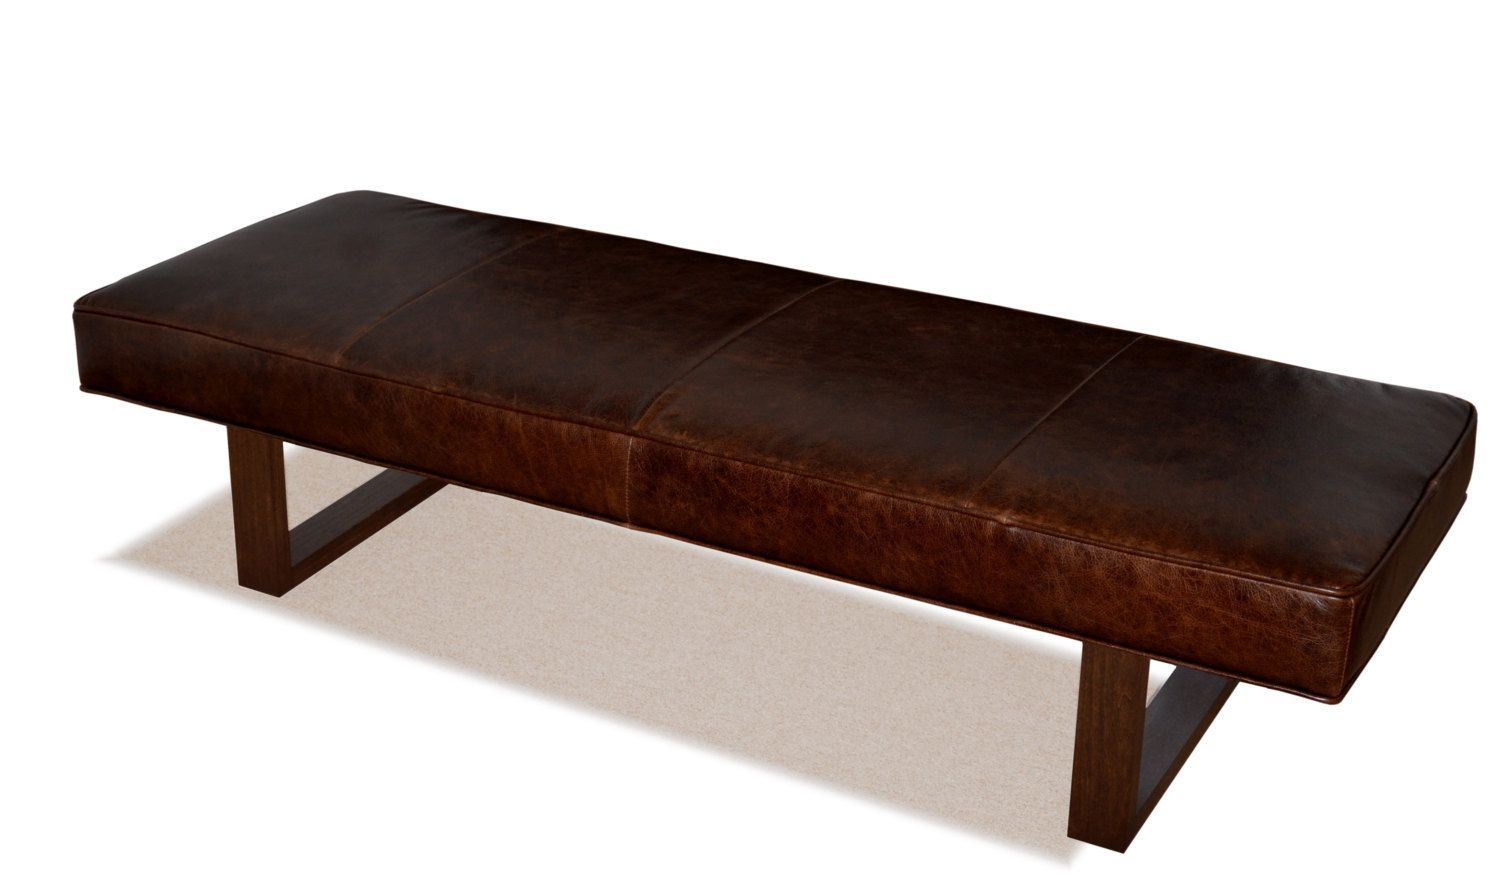 Admirable Genuine Leather Upholstered Bench Ottoman Coffee Table By Machost Co Dining Chair Design Ideas Machostcouk